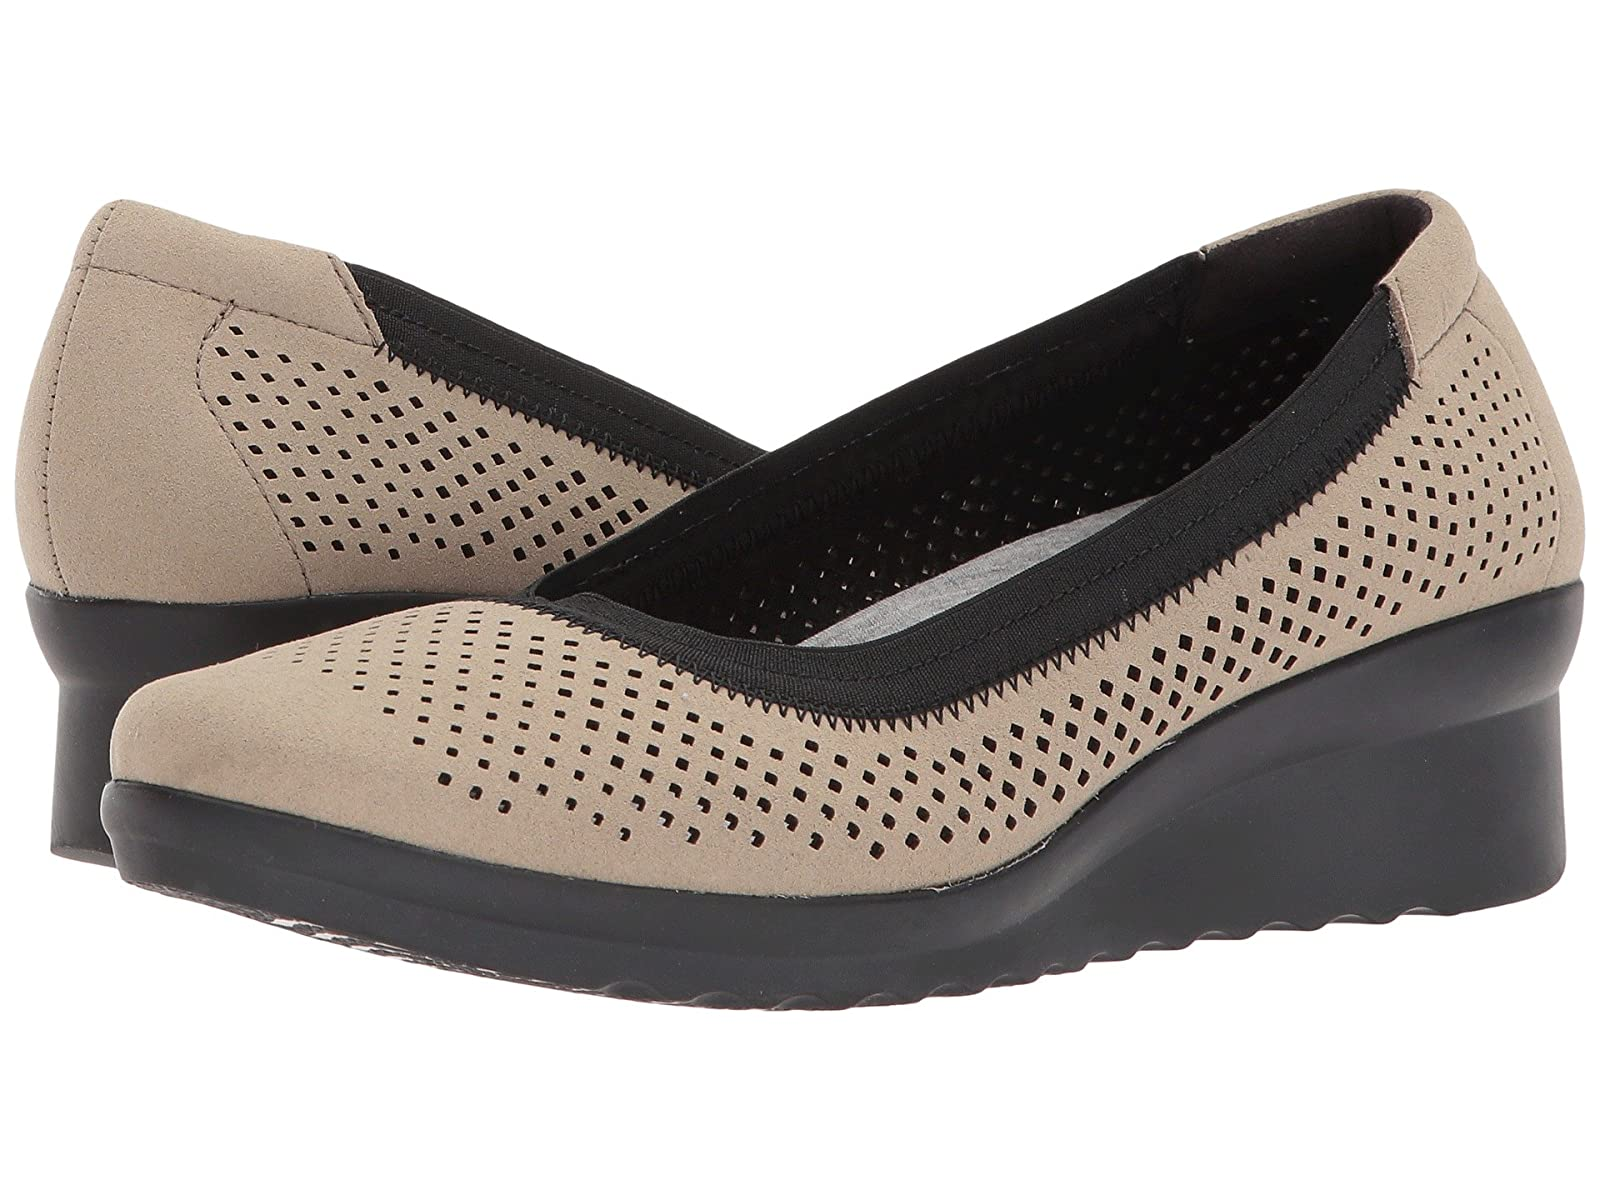 Clarks Caddell TrailCheap and distinctive eye-catching shoes